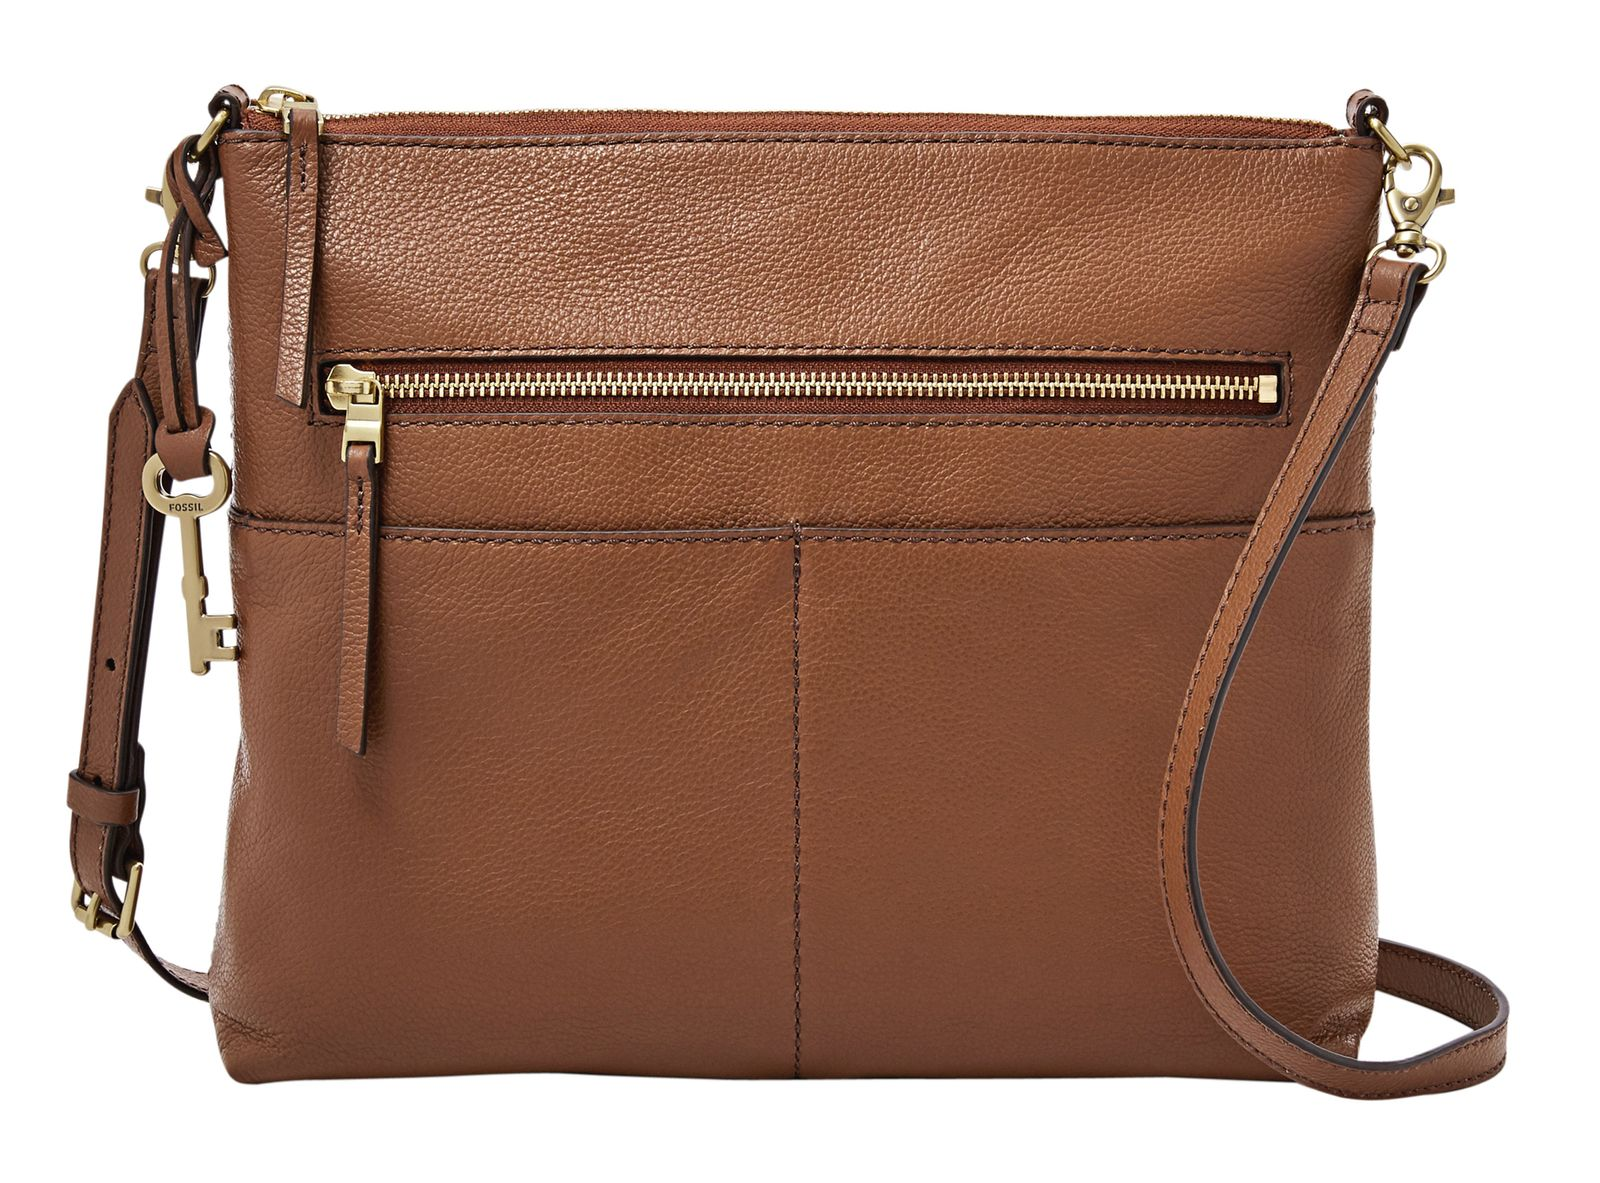 08d041489ebc FOSSIL Cross Body Bag Fiona Large Crossbody